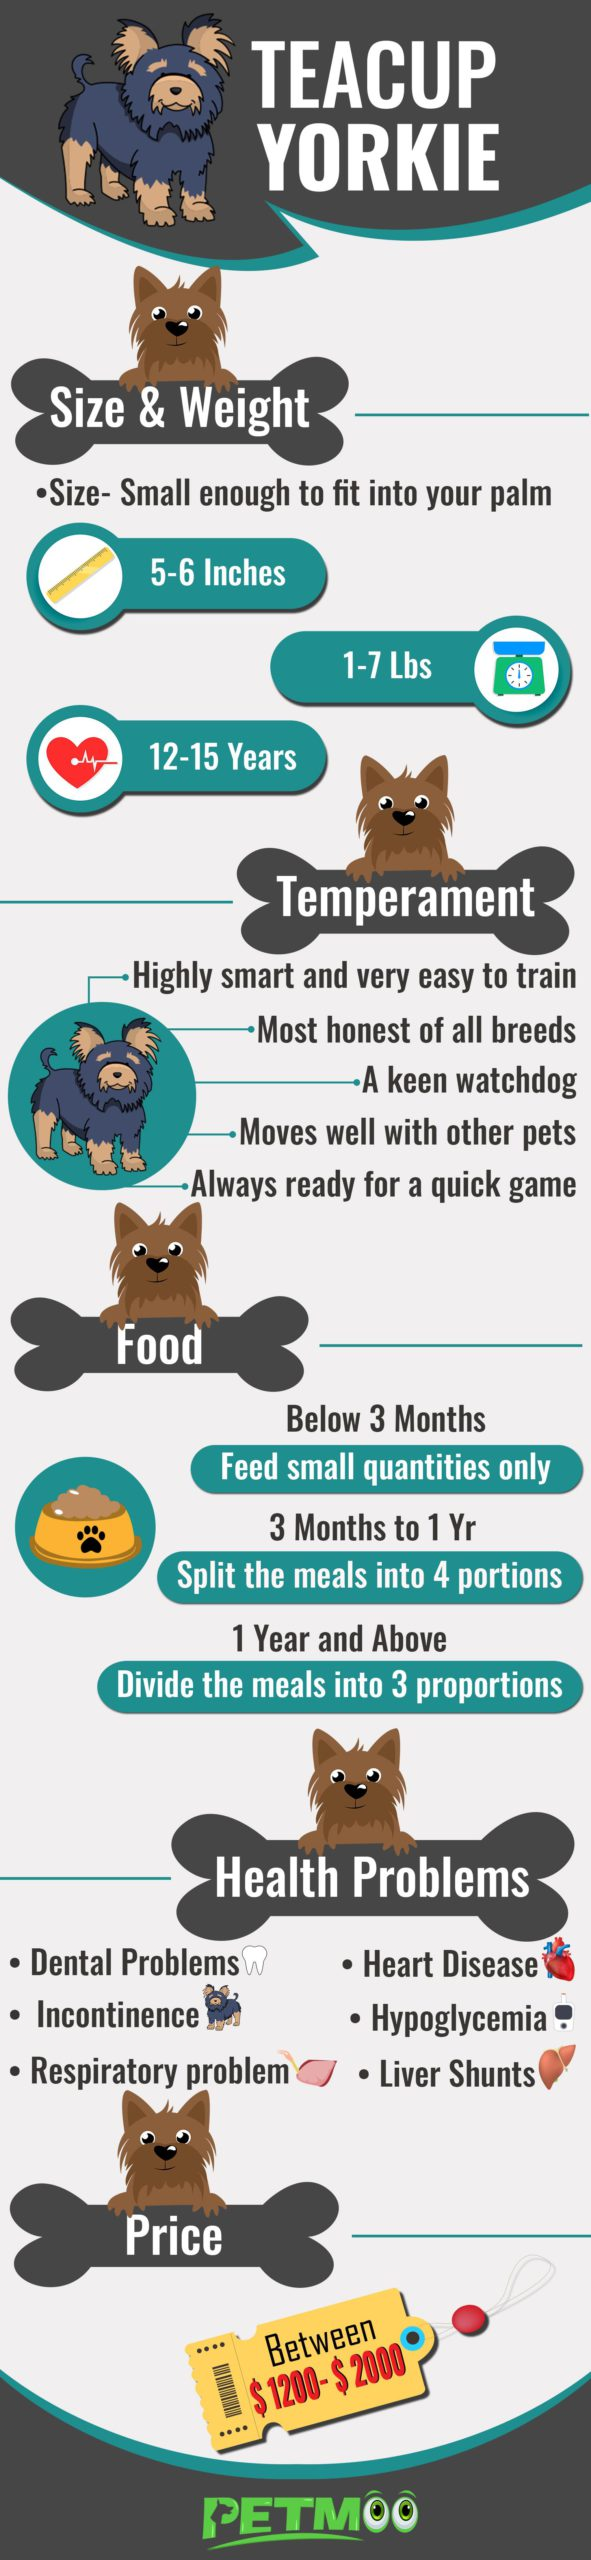 Teacup Yorkie Infographic